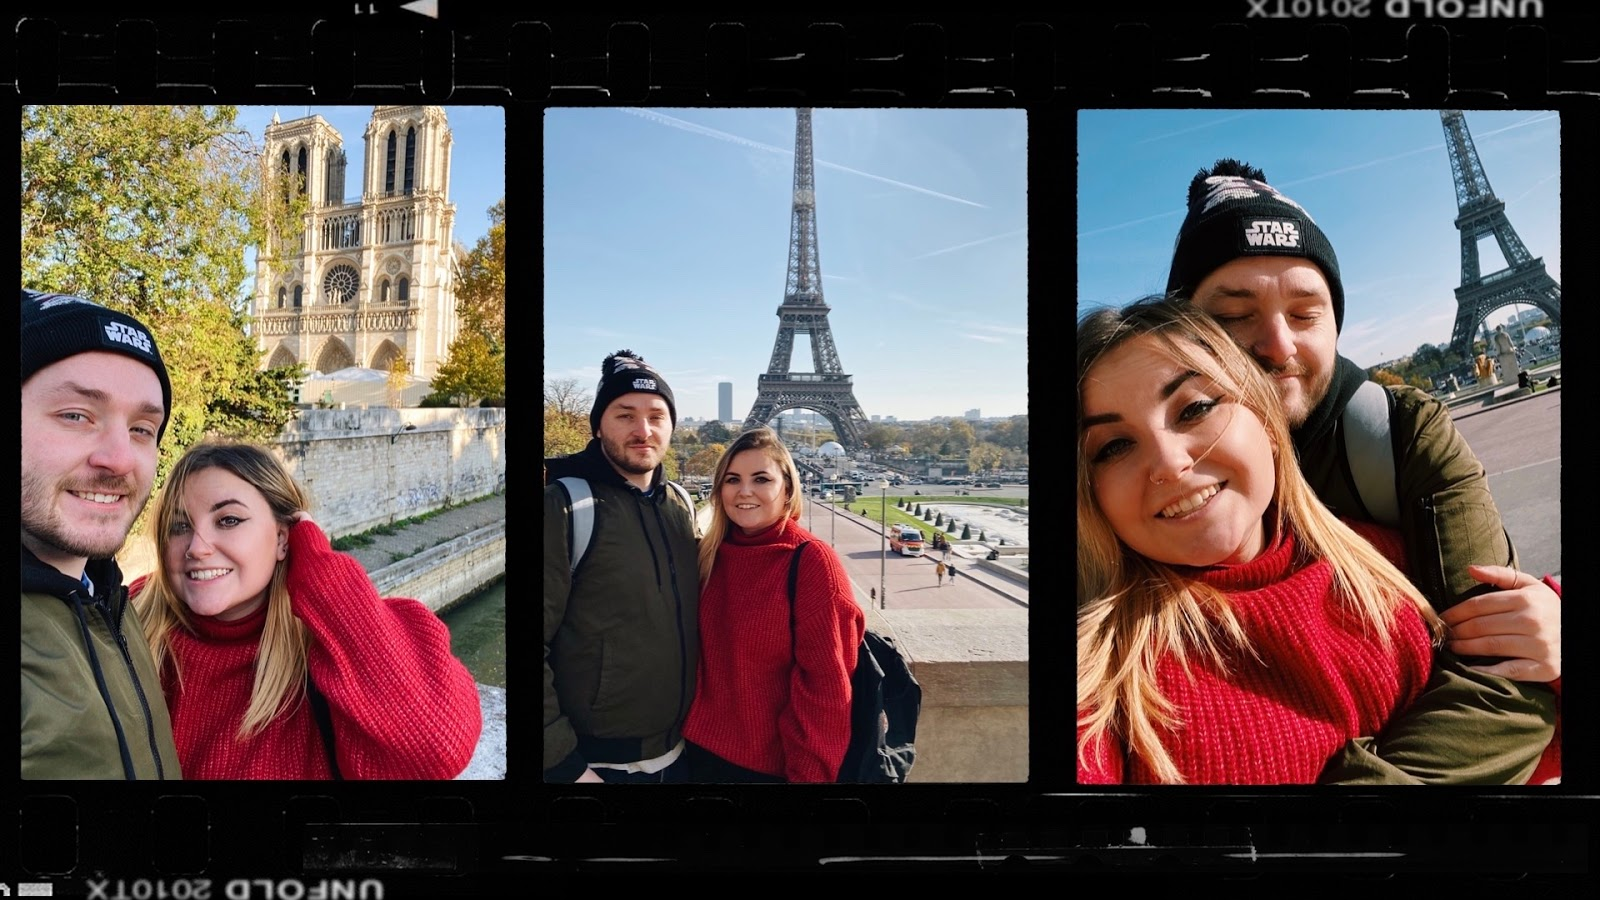 Day trip to Paris - see the stars